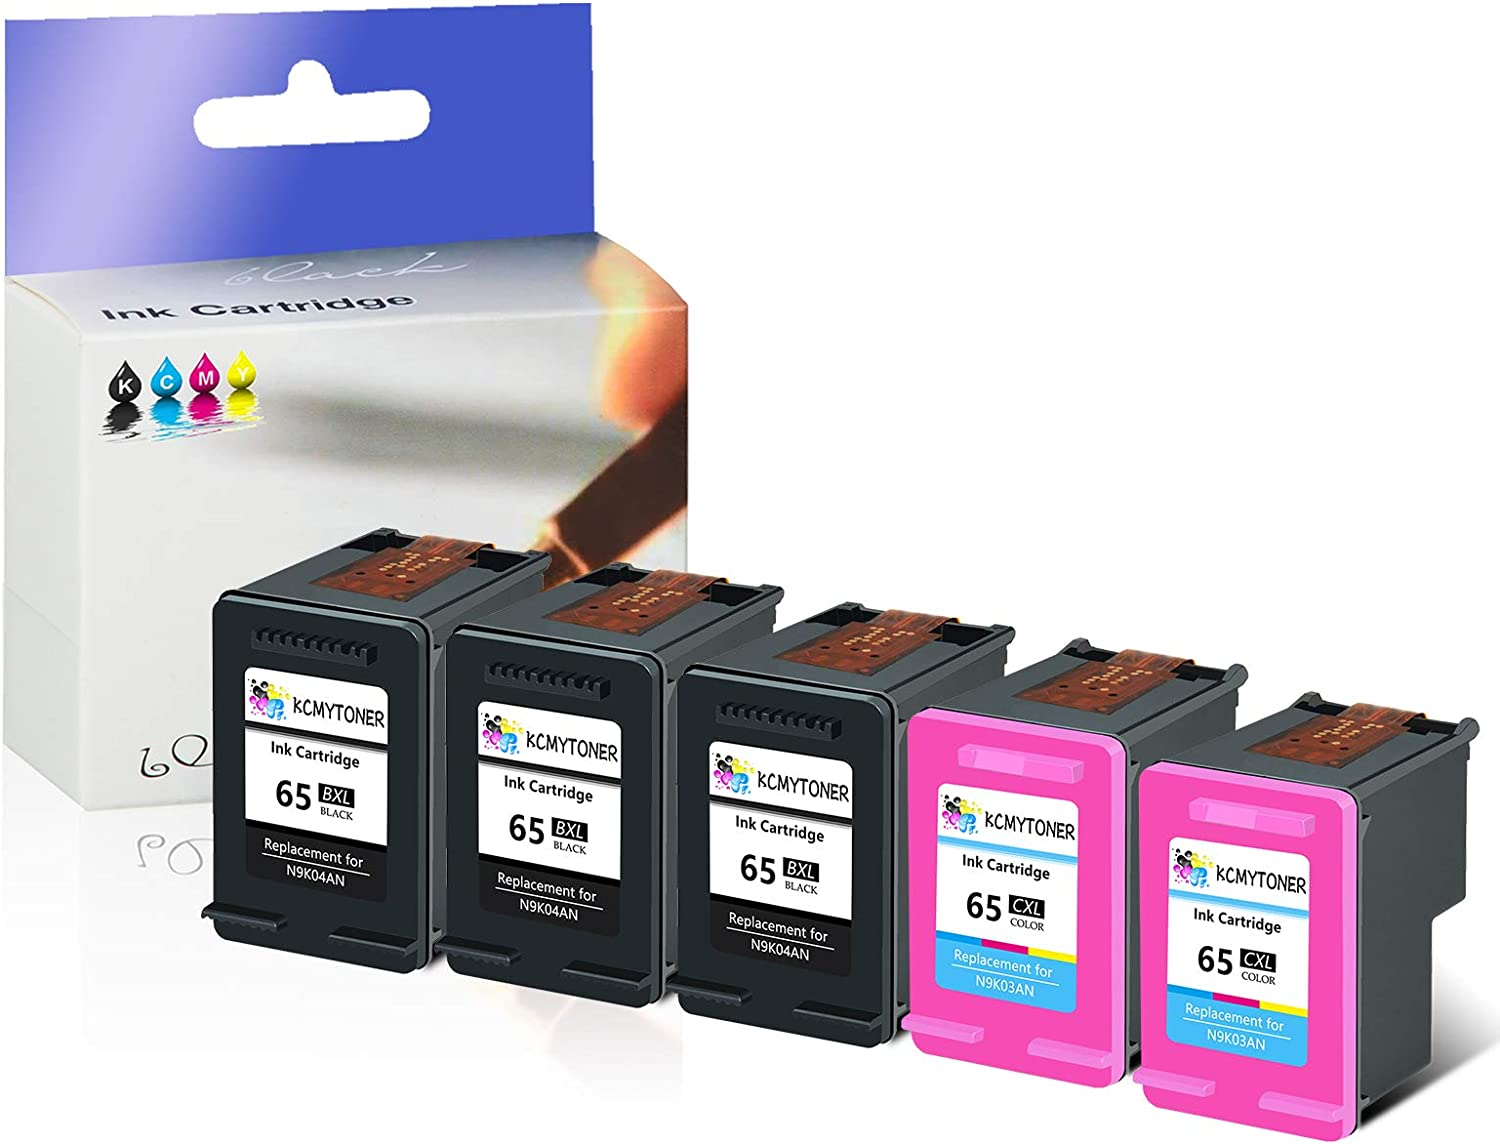 3 Black 2 Tri-Color KCMYTONER Remanufactured 65 XL 65XL N9K04AN N9K03AN Ink Cartridge Compatible for HP Envy 5052 5055 5058 Deskjet 2624 2652 2655 3720 3730 3752 3755 with Latest Chip Show Ink Level